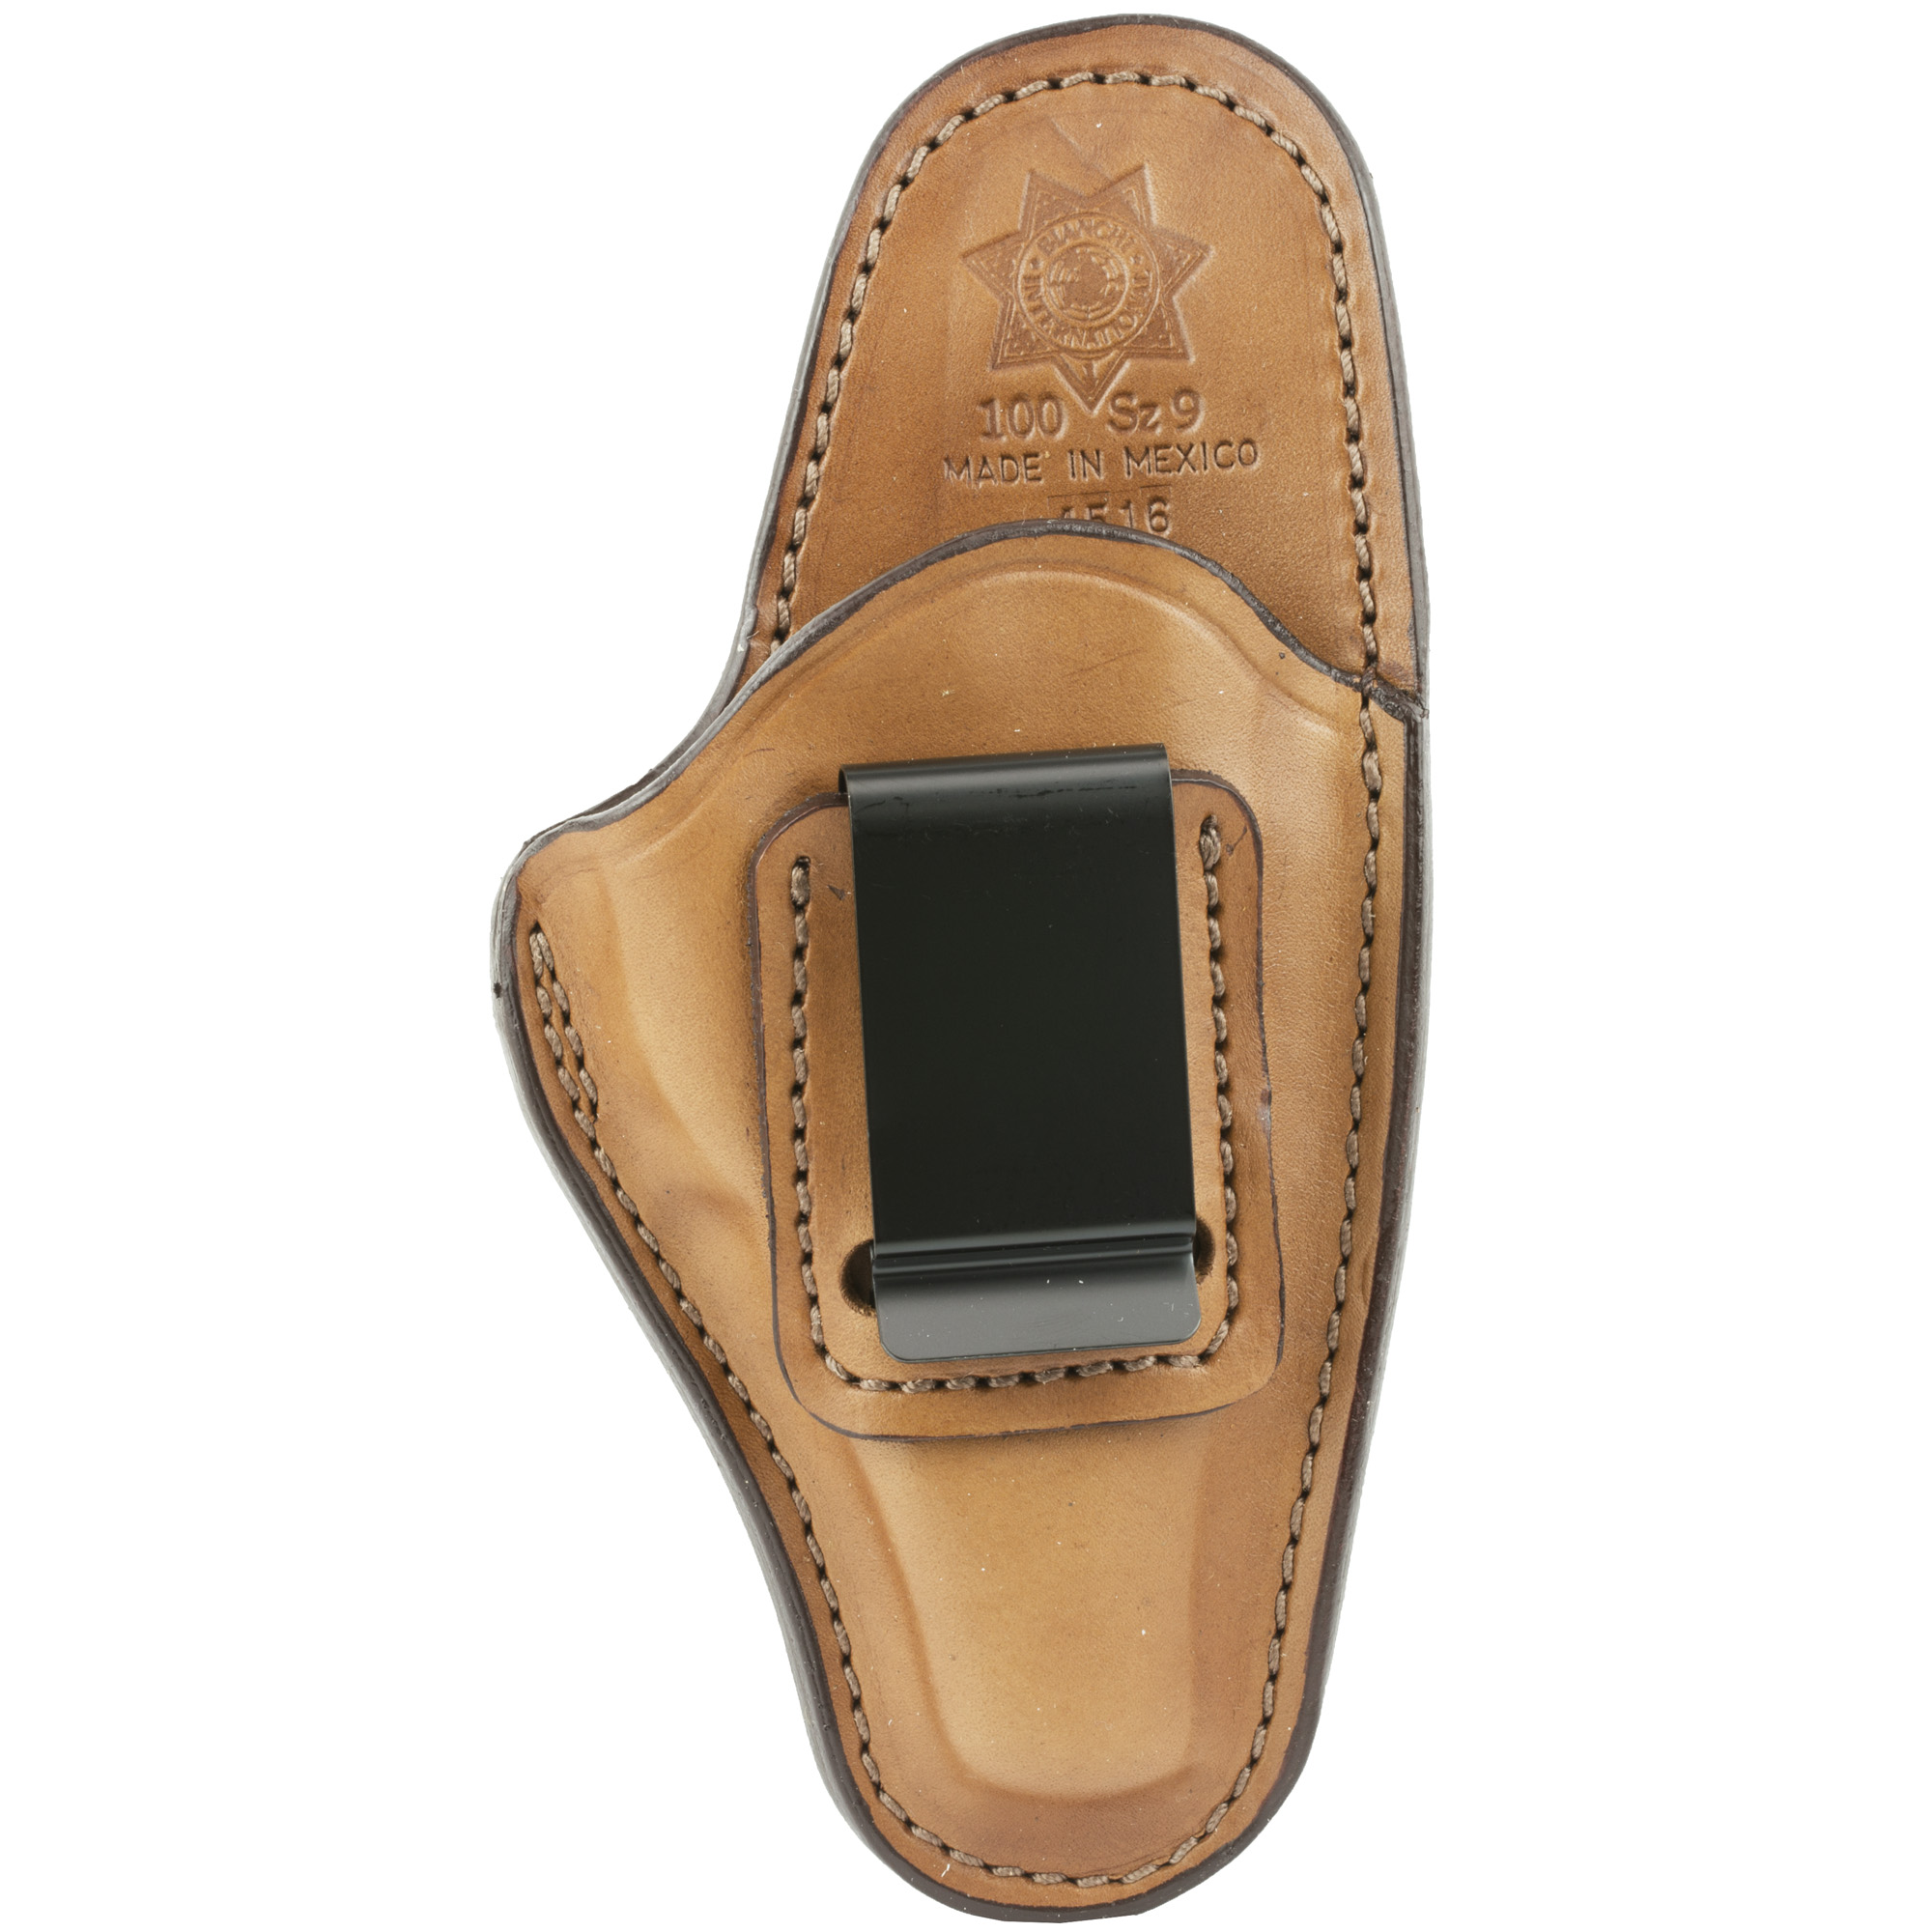 This leather inside the waistband holster meets the requirements for deep concealment applications. The design features a high back that provides a shield between the body and the sharp edges pf the pistol for comfort and to protect clothing. It is designed to ride at the optimum angle inside the waistband to allow for a proper firing grip. The belt clip provides easy on/off convenience and securely anchors the holster to the belt.